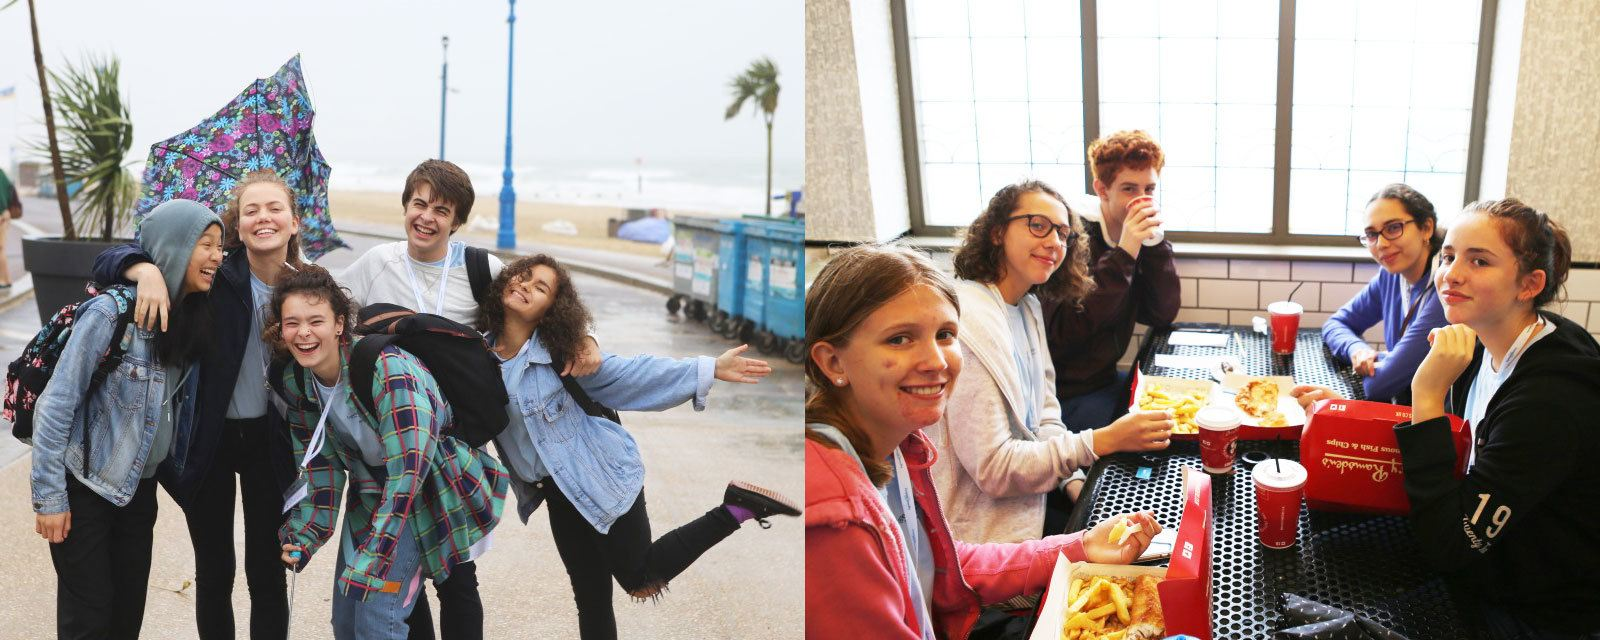 Trip to Bournemouth, getting the British seaside experience with Fish and Chips